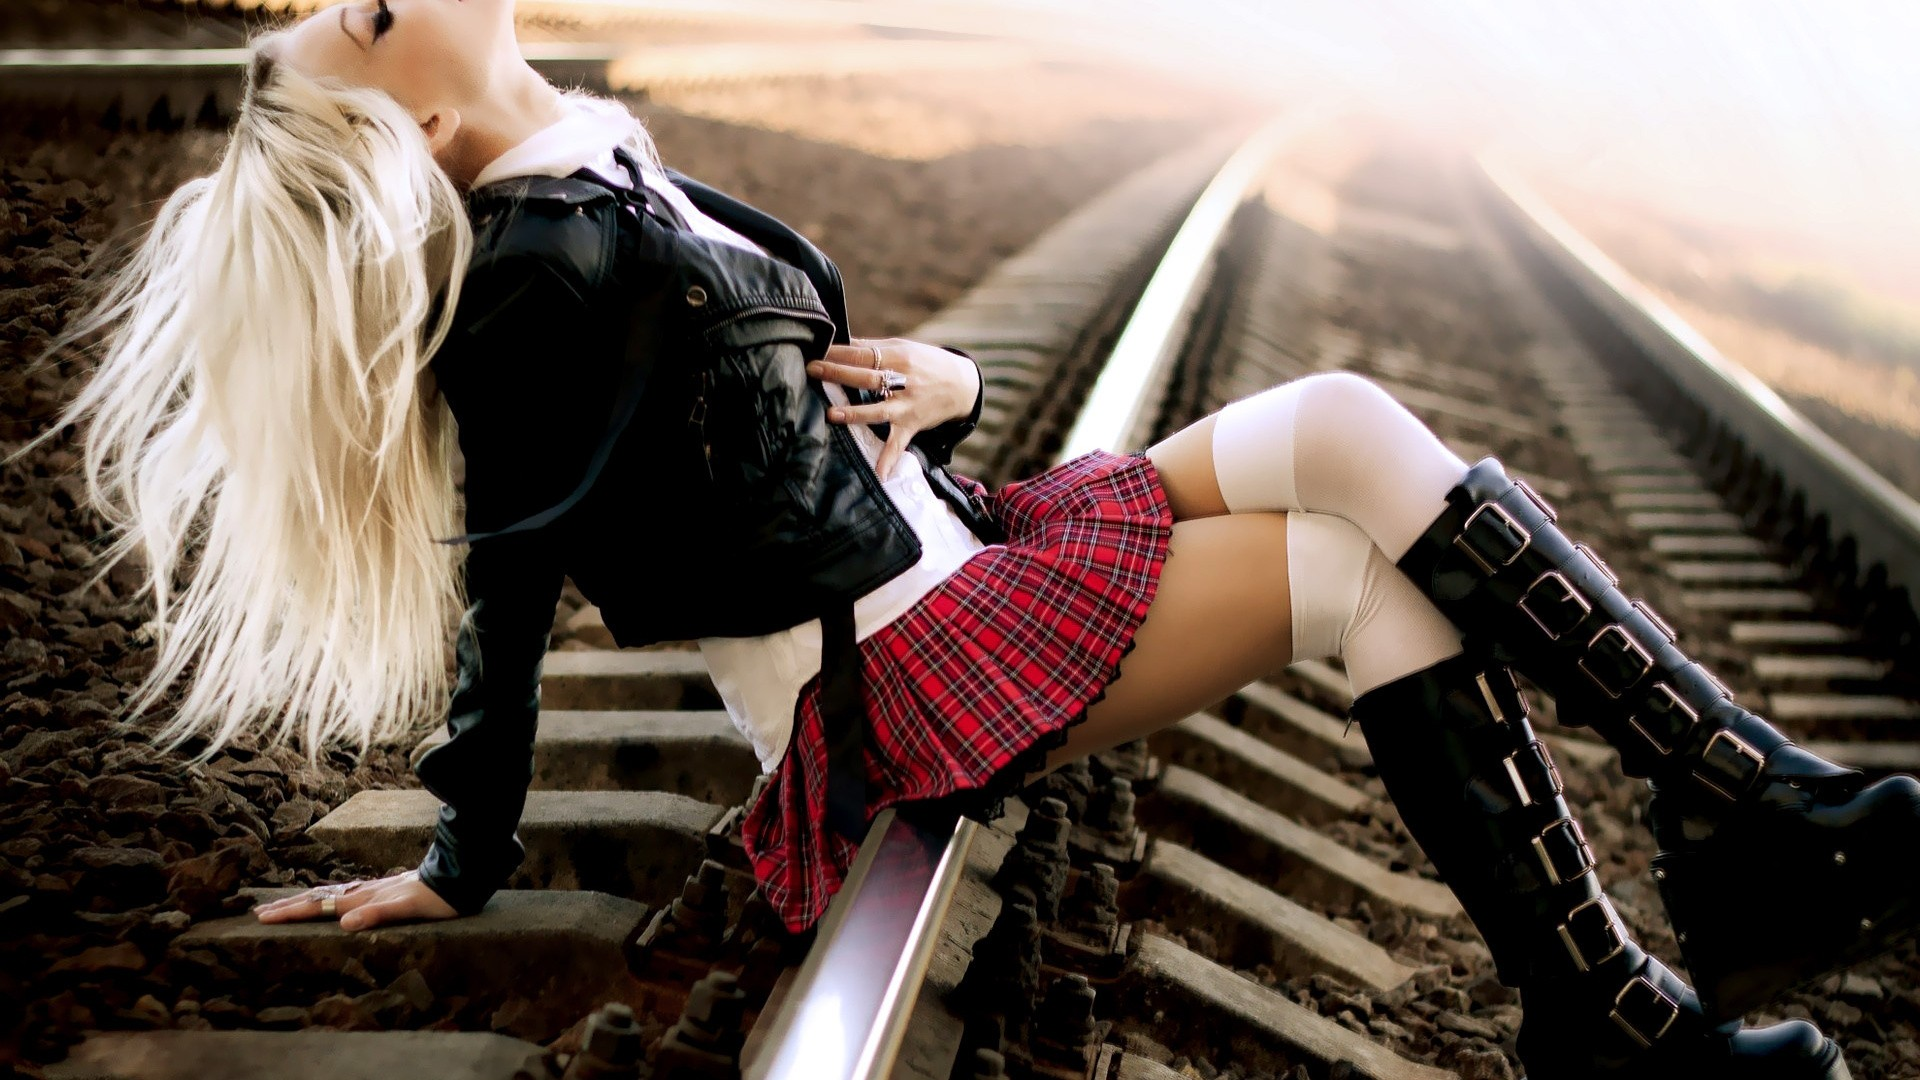 railroad tracks lingerie skirts HD Wallpaper